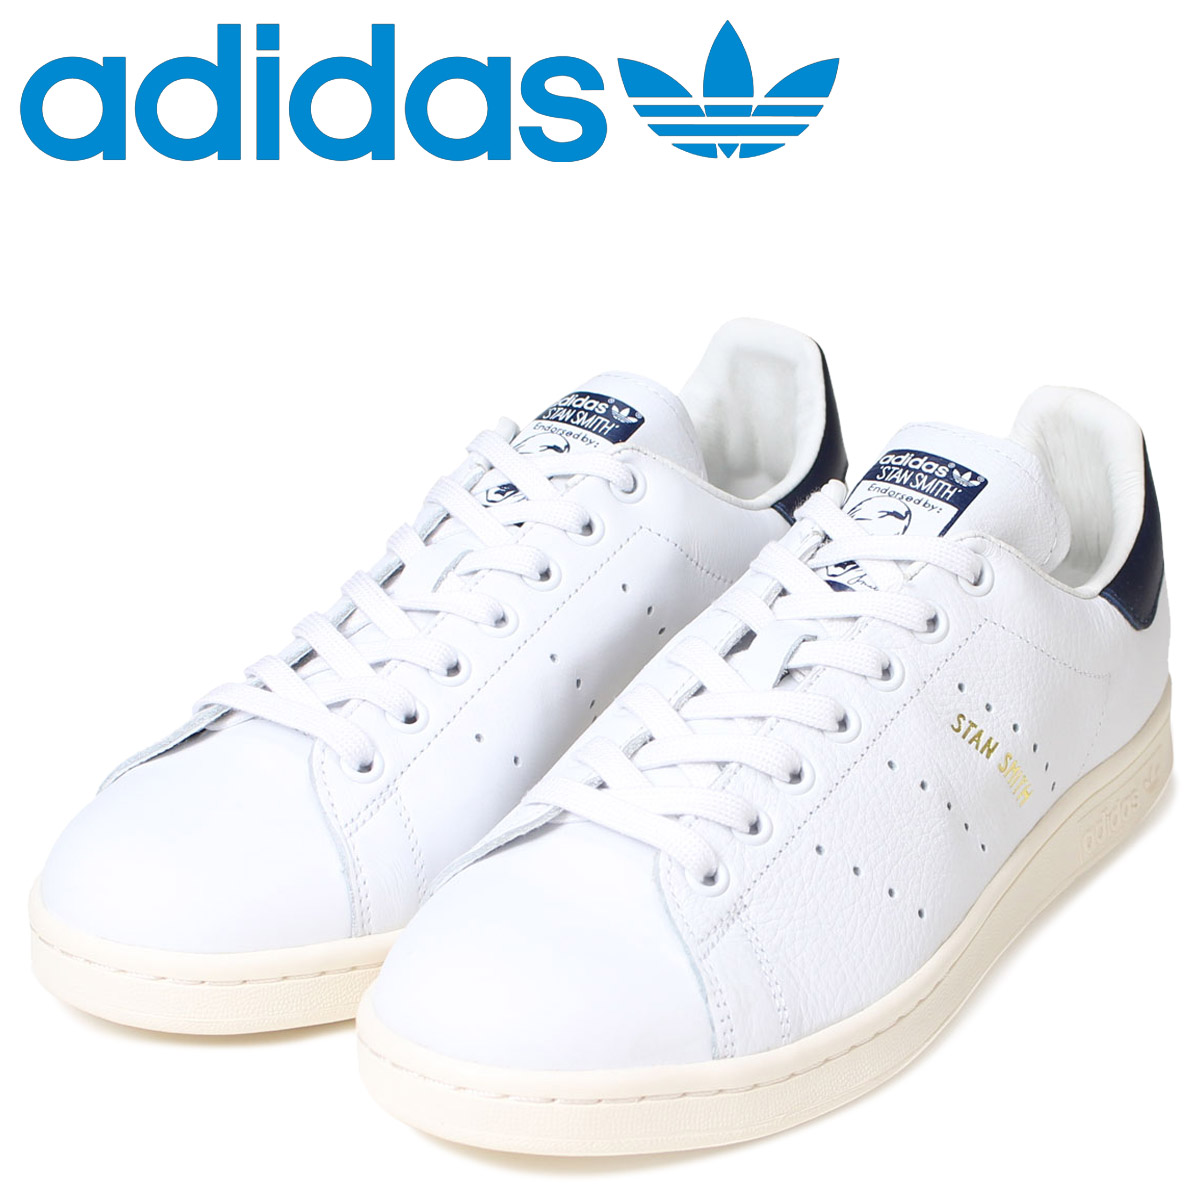 How adidas pumped up their Superstar campaign with email